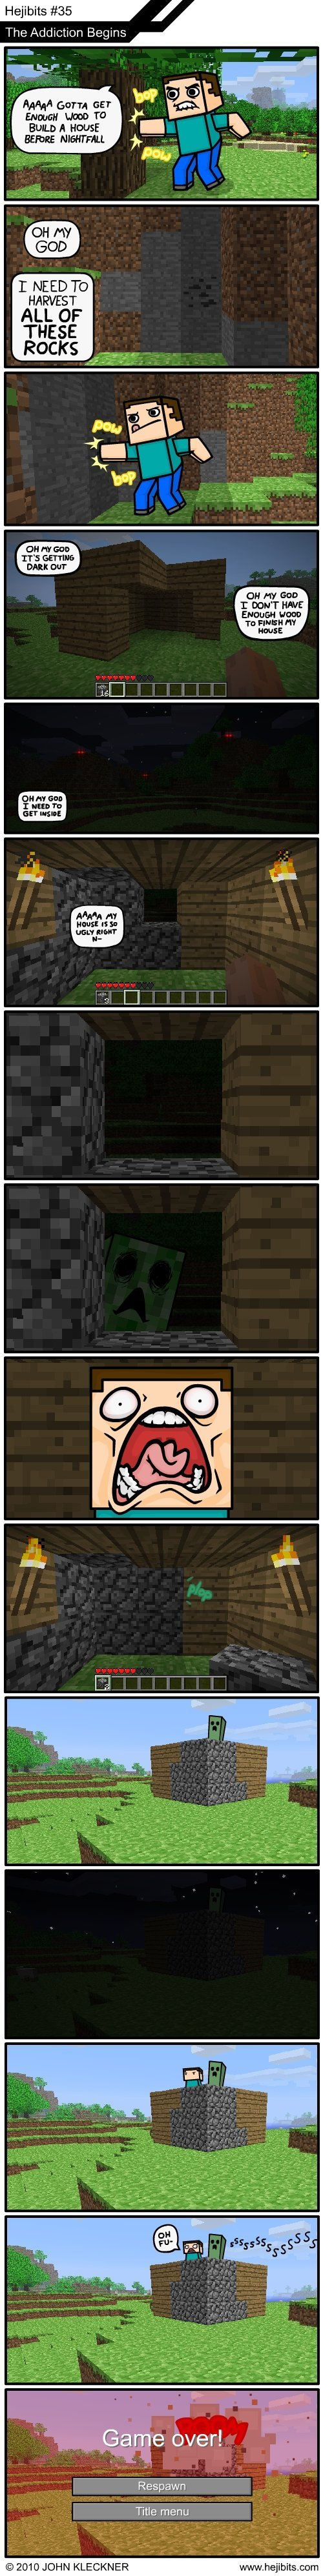 minecraft - has this ever happend to you while playing minecraft